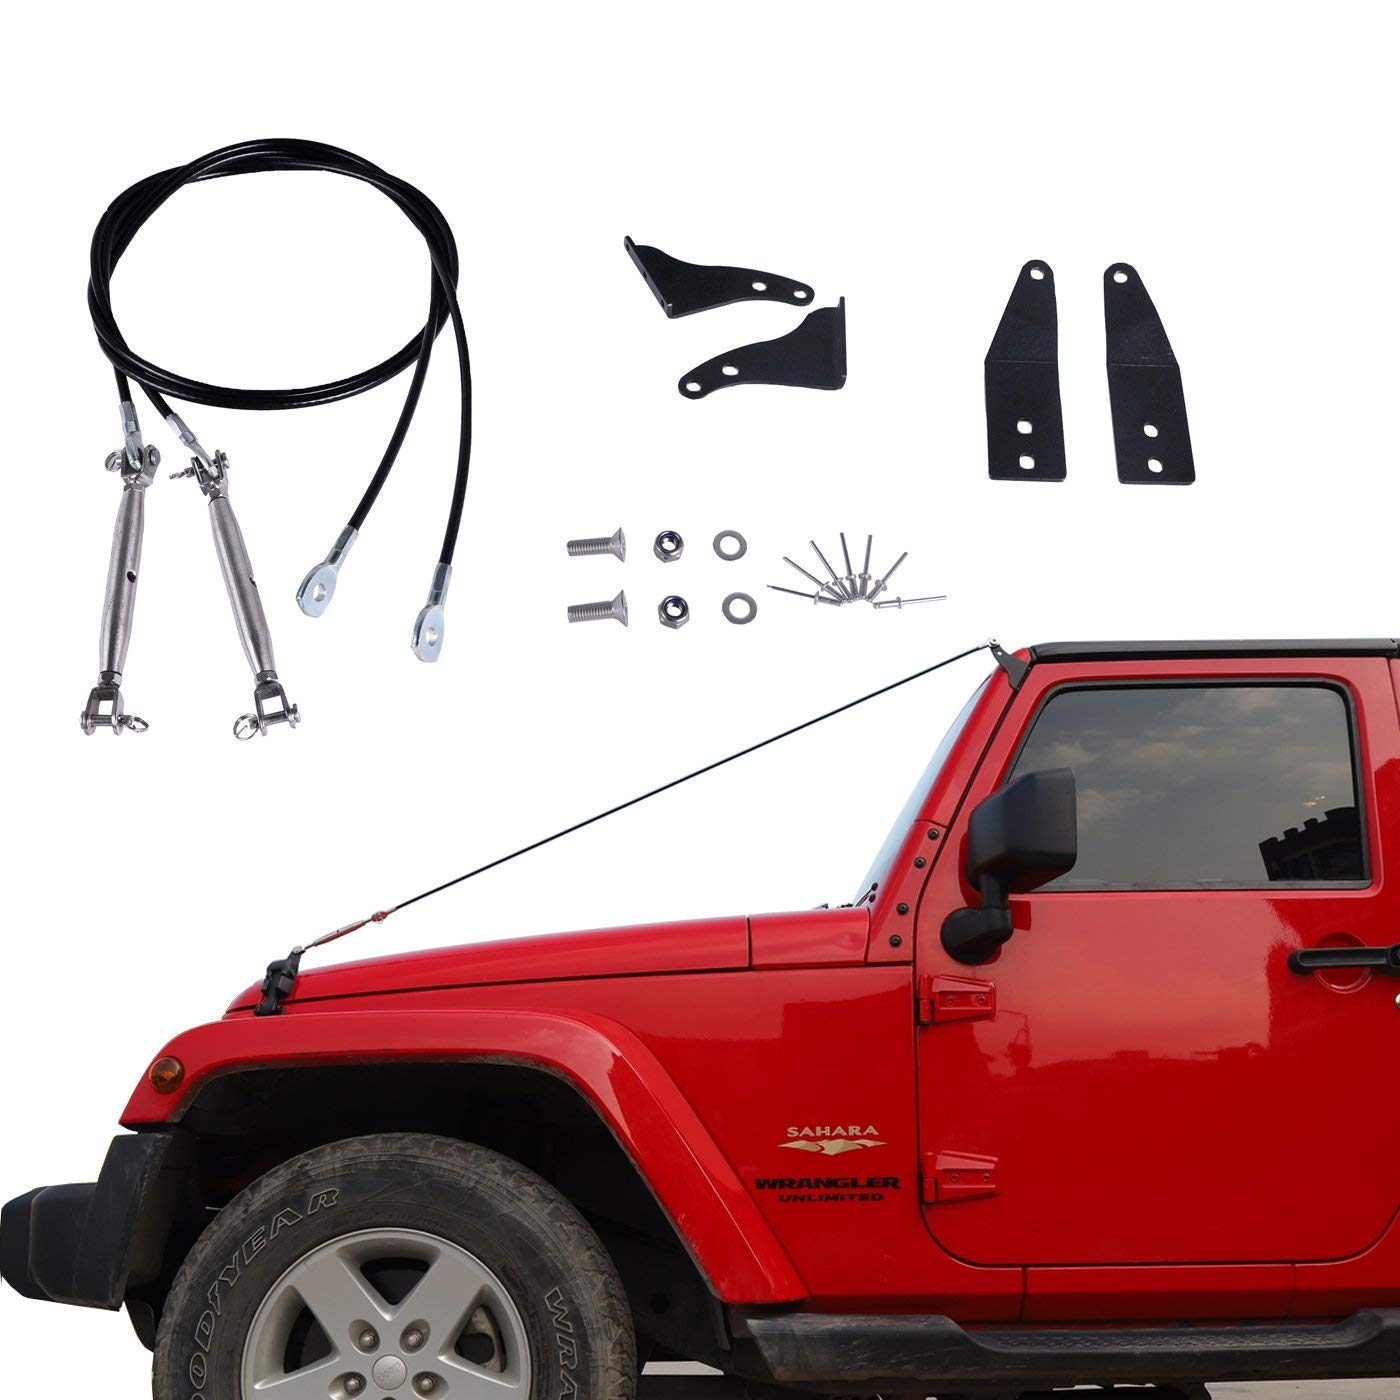 Wisamic Limb Risers Kit for Jeep Wrangler JK 2007-2018, TJ 1997-2006 Through The Jungle Protector Obstacle Eliminate Rope